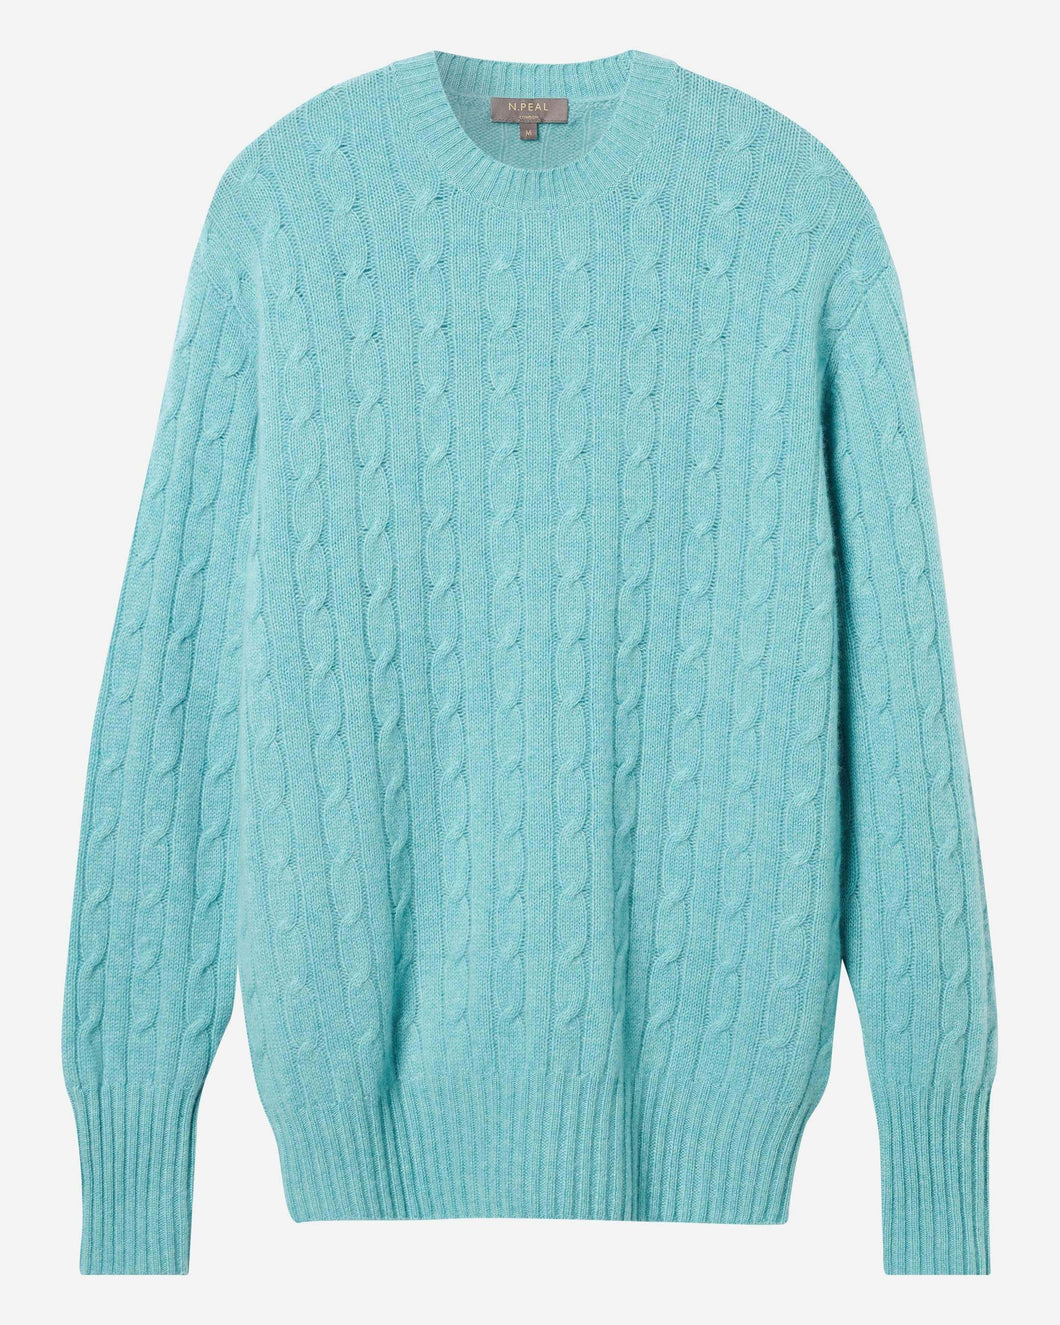 The Thames Cable Round Neck Cashmere Jumper Aqua Green